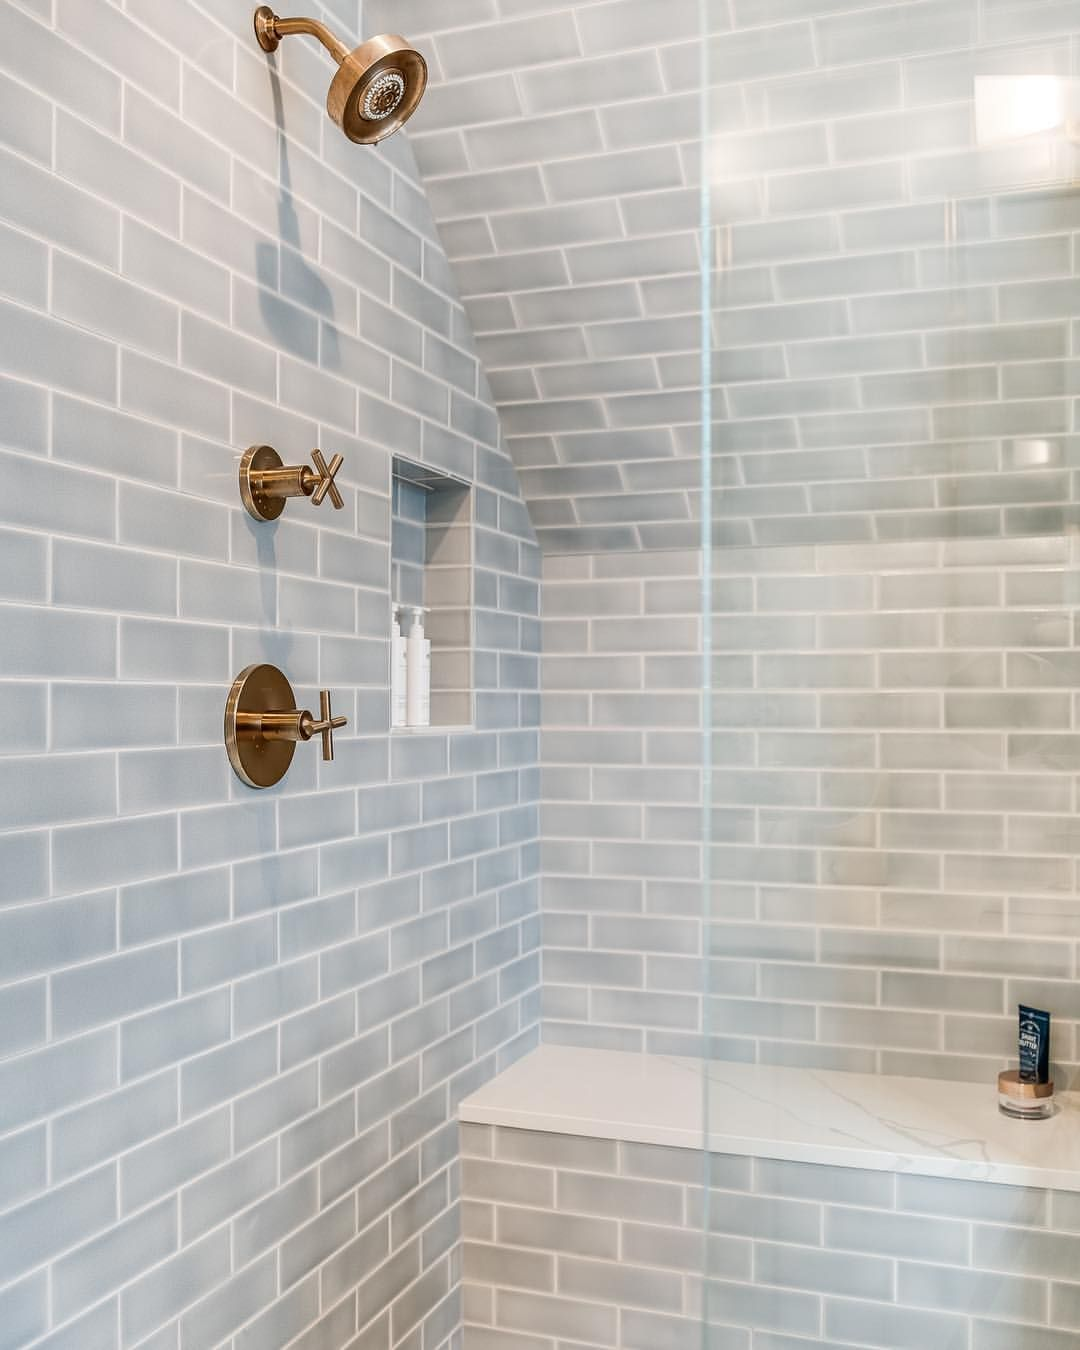 Serious Shower Envy Design Cara Alyn Interiors Fiocreative Tile Shown Foggy Morning 3x9 Bathroom Wall Tile Bathroom Floor Tiles Bathrooms Remodel